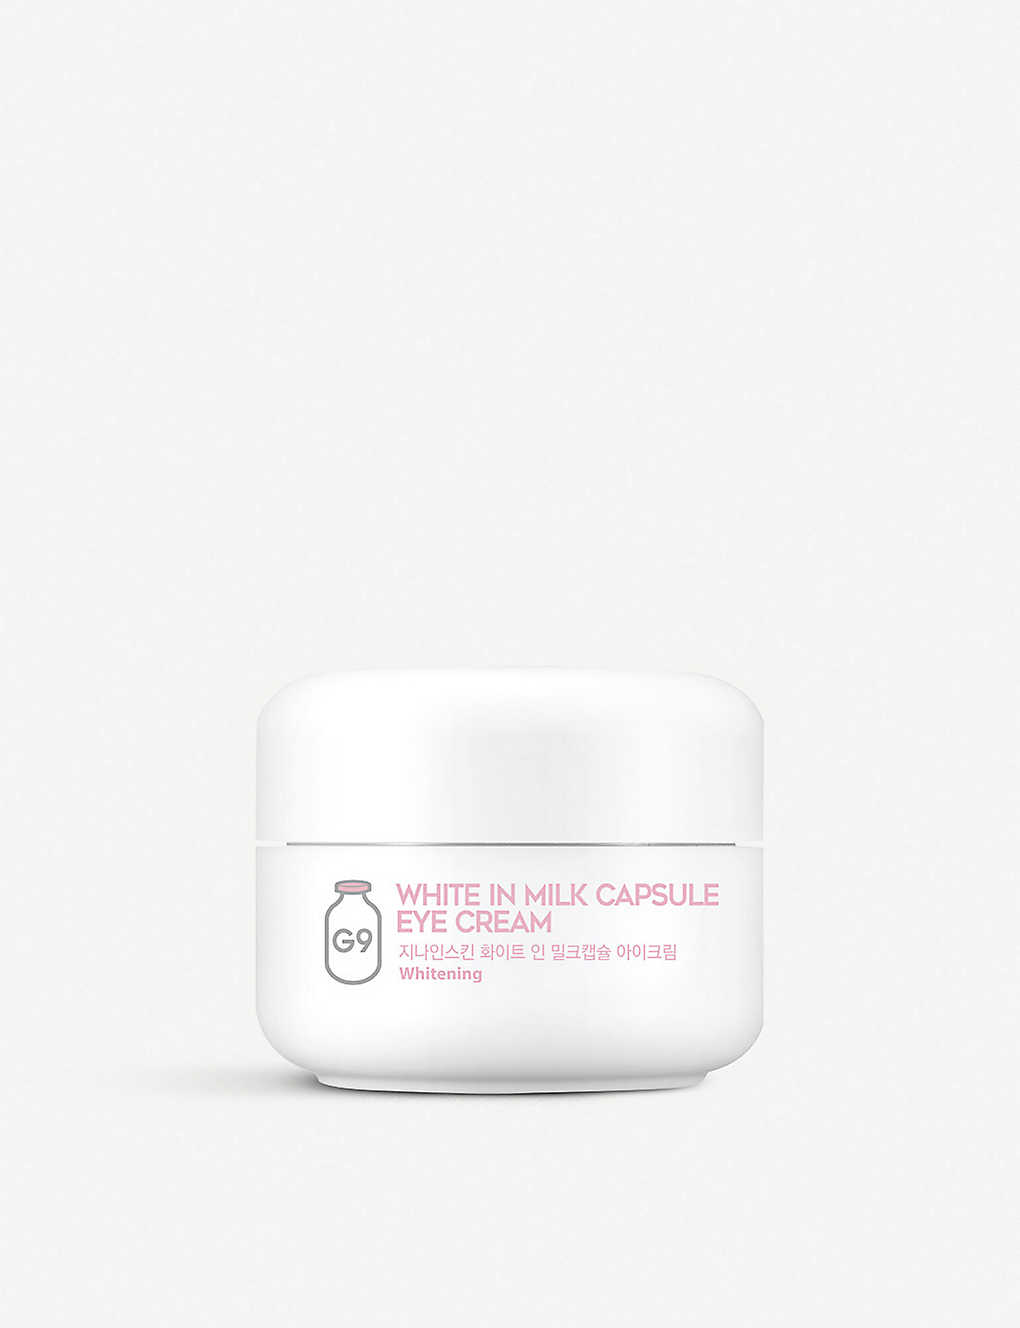 G9: White In Milk capsule eye cream